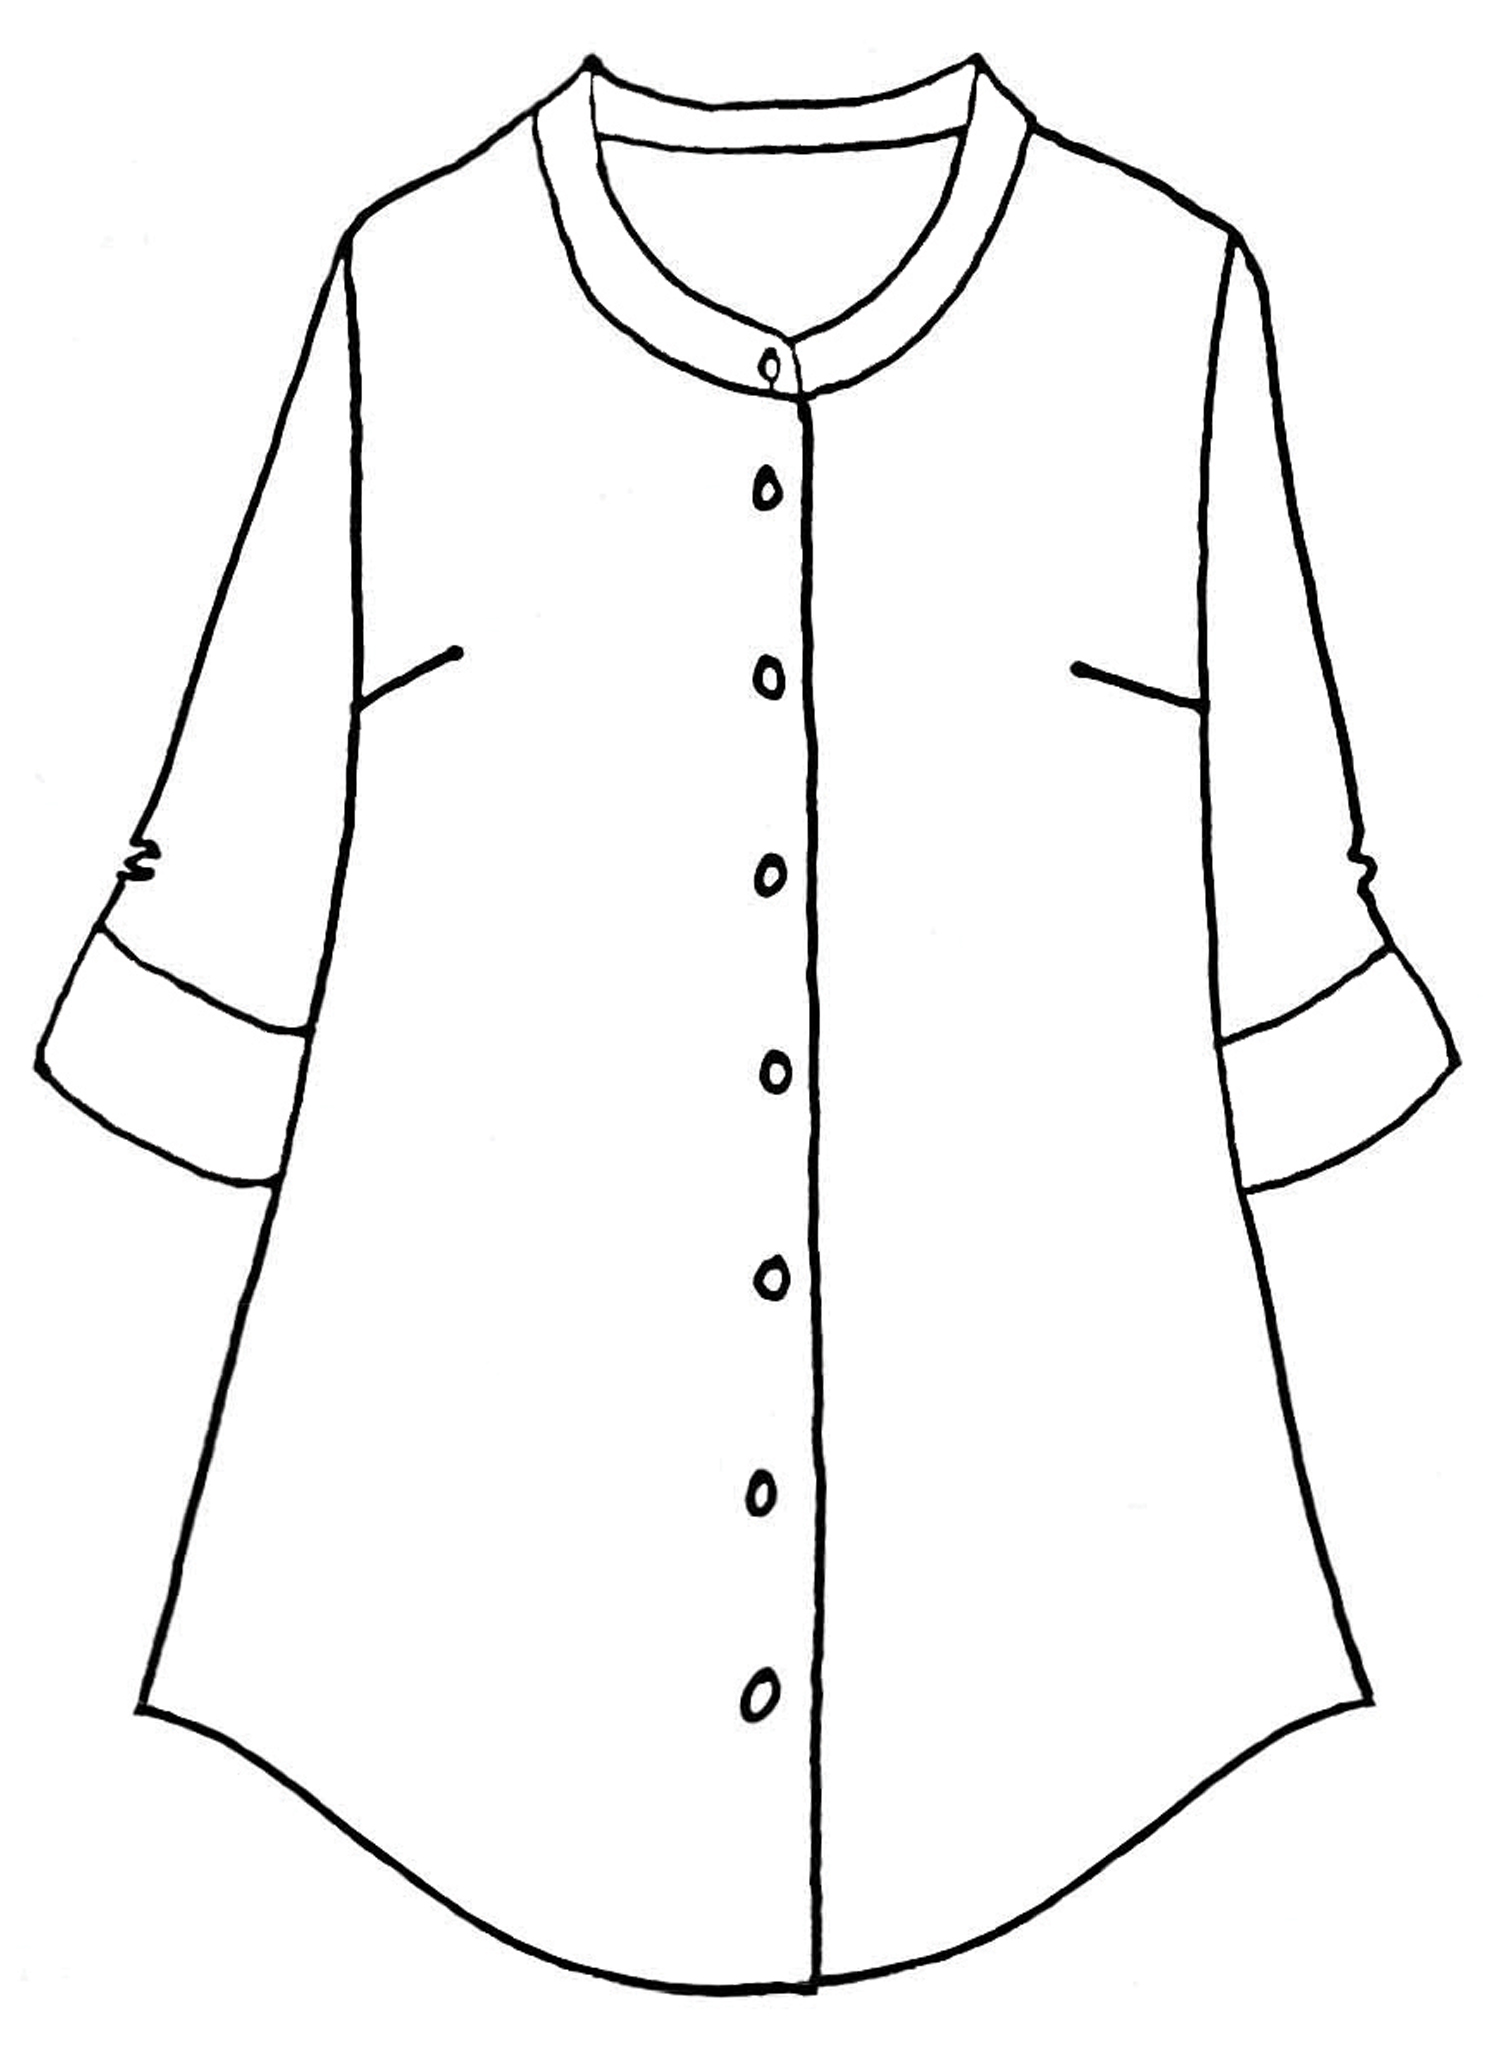 Vintage Shirt Tunic sketch image